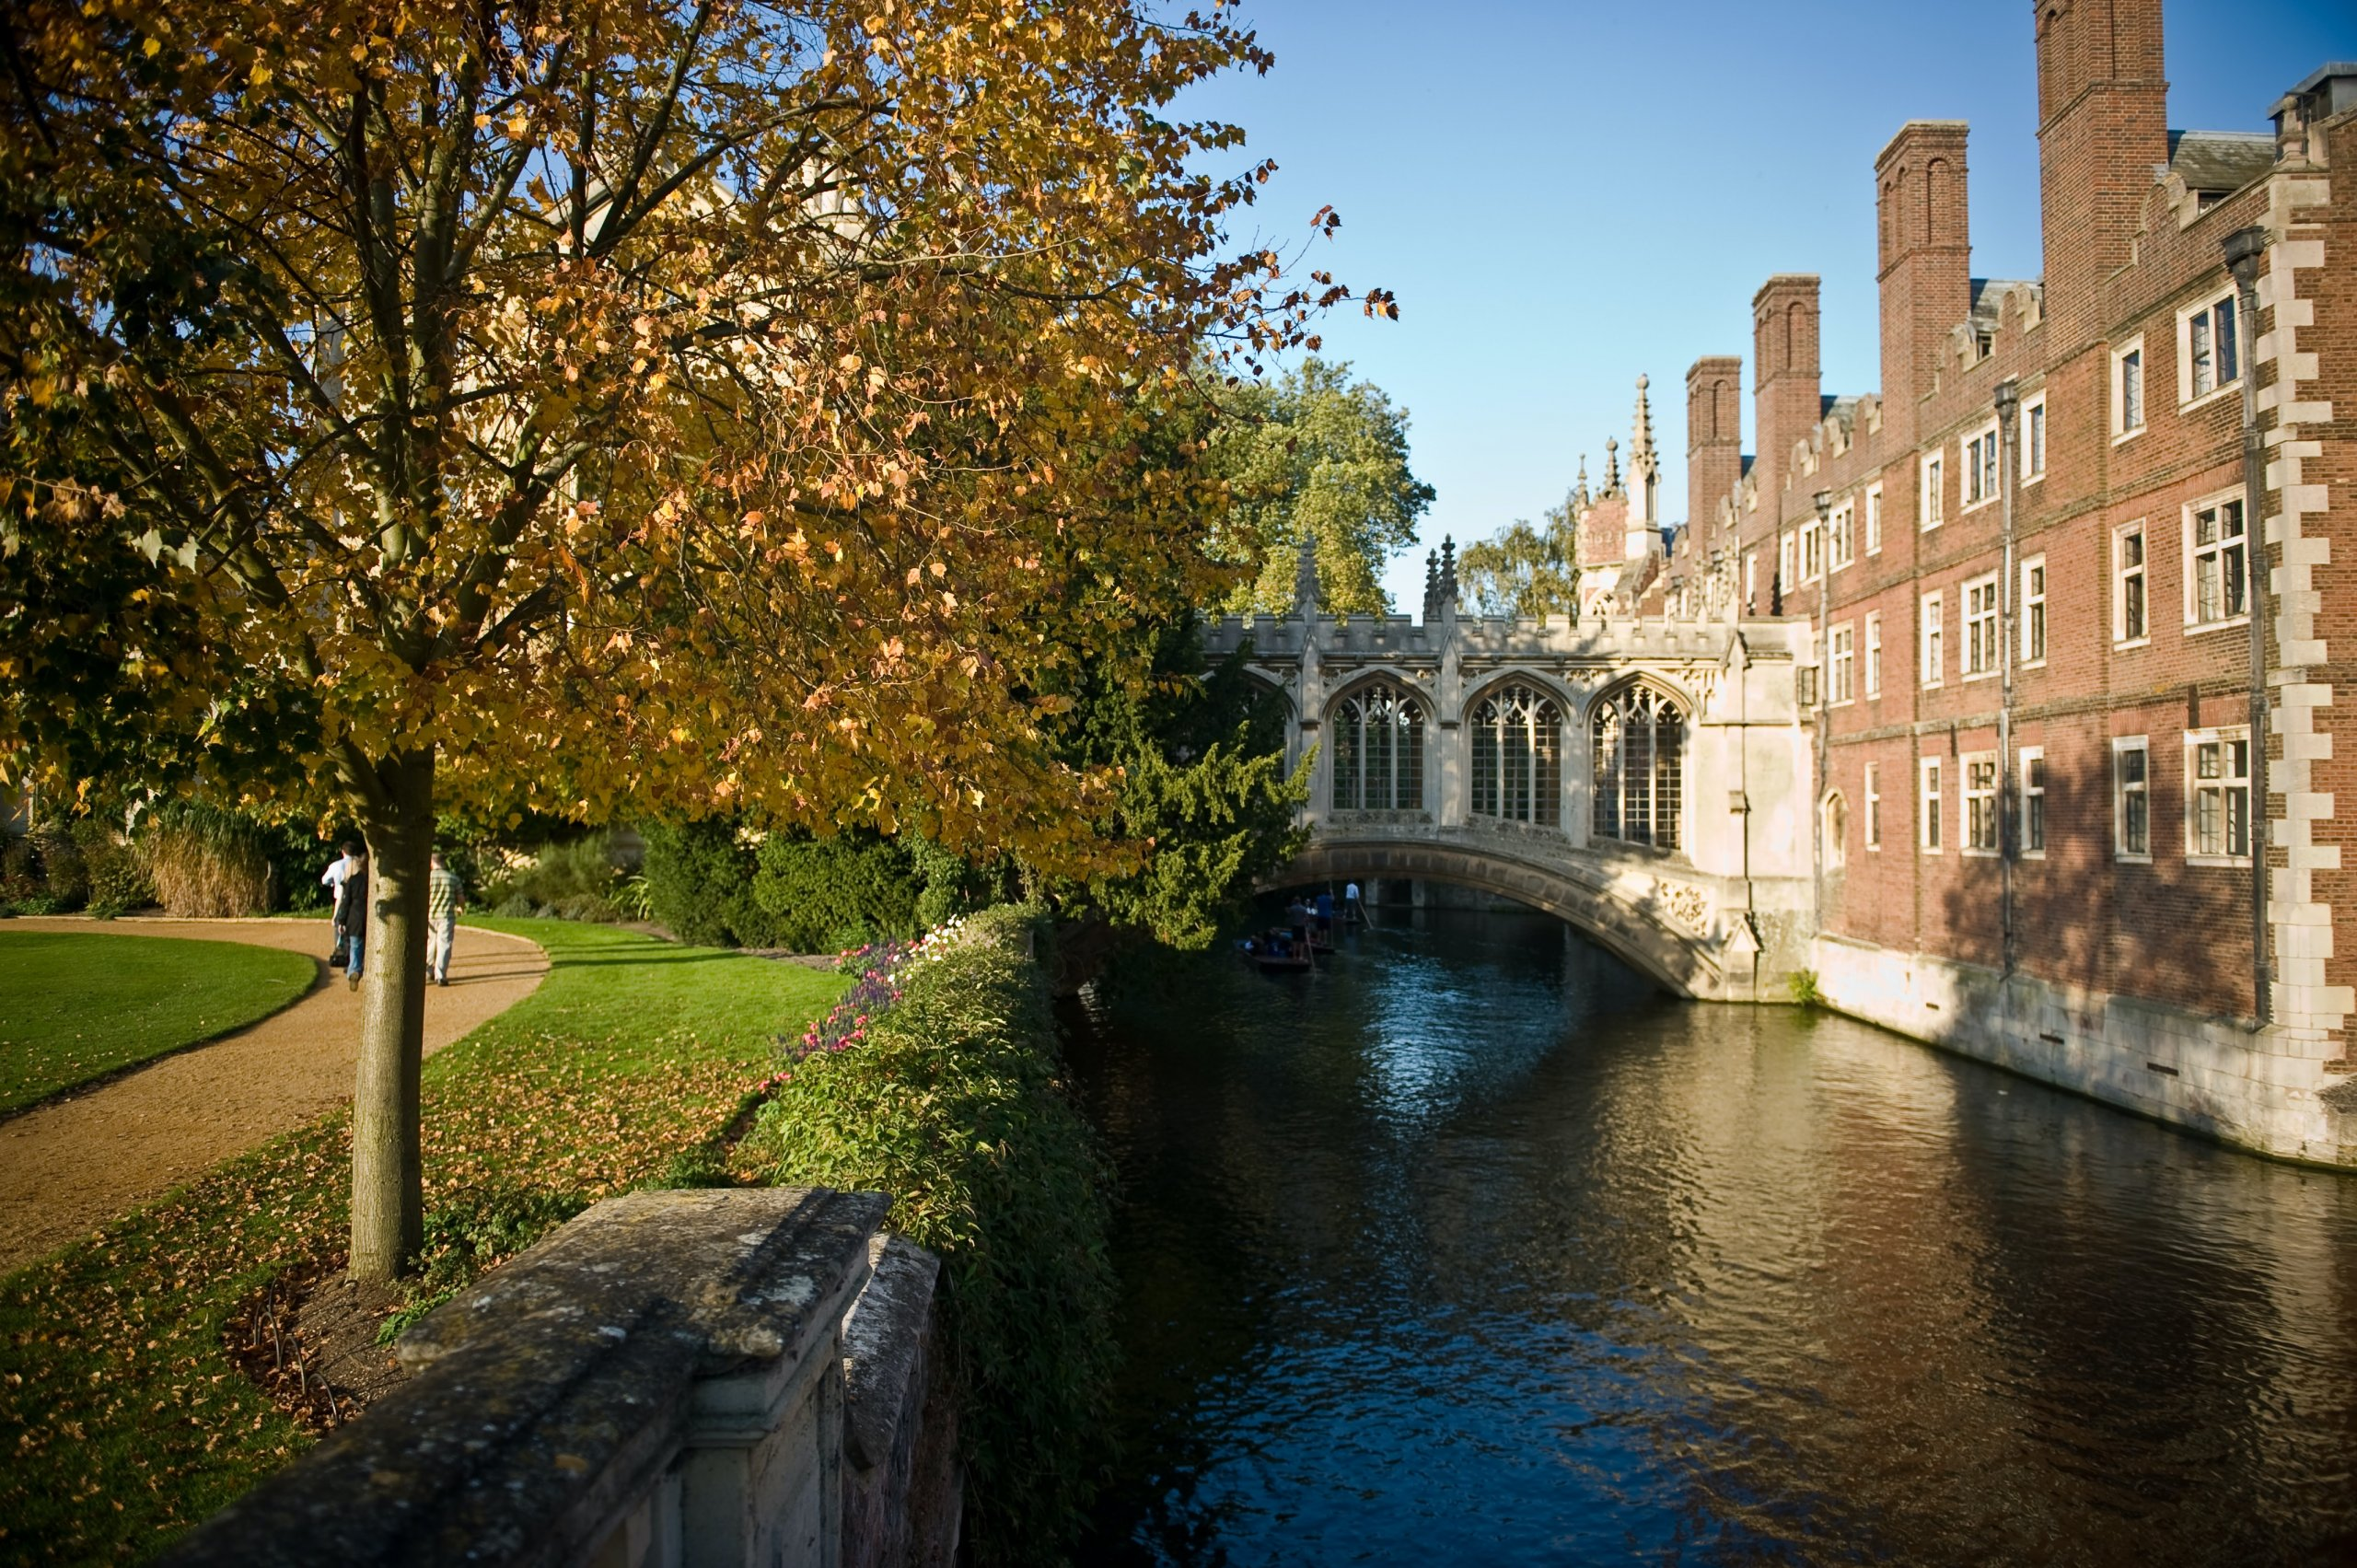 covered stone bridge across River with stone buildings on the right and green park on the left, Cambridge, UK